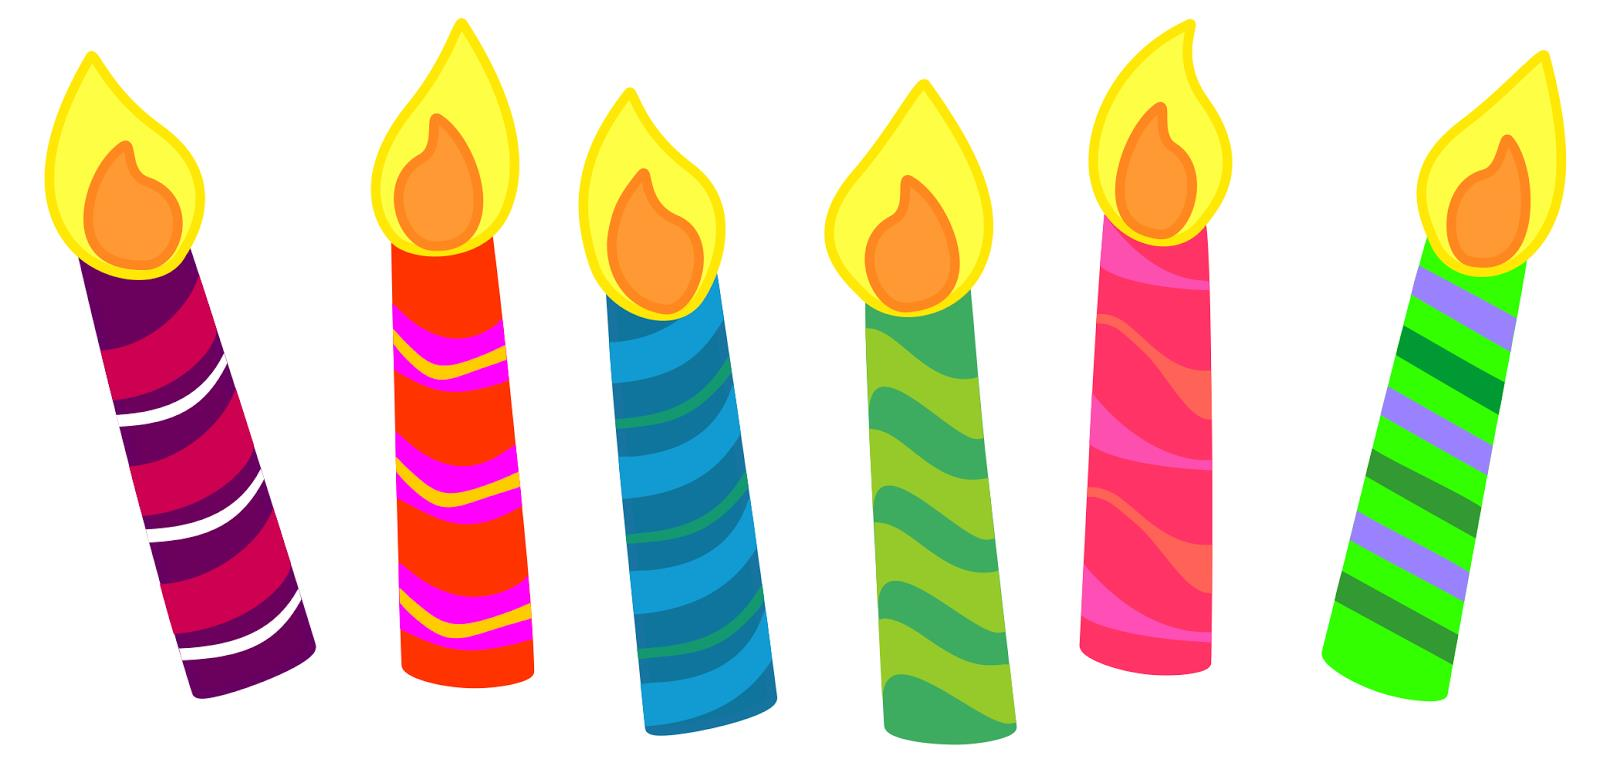 birthday candle transparent background ; birthday-candles-png-21